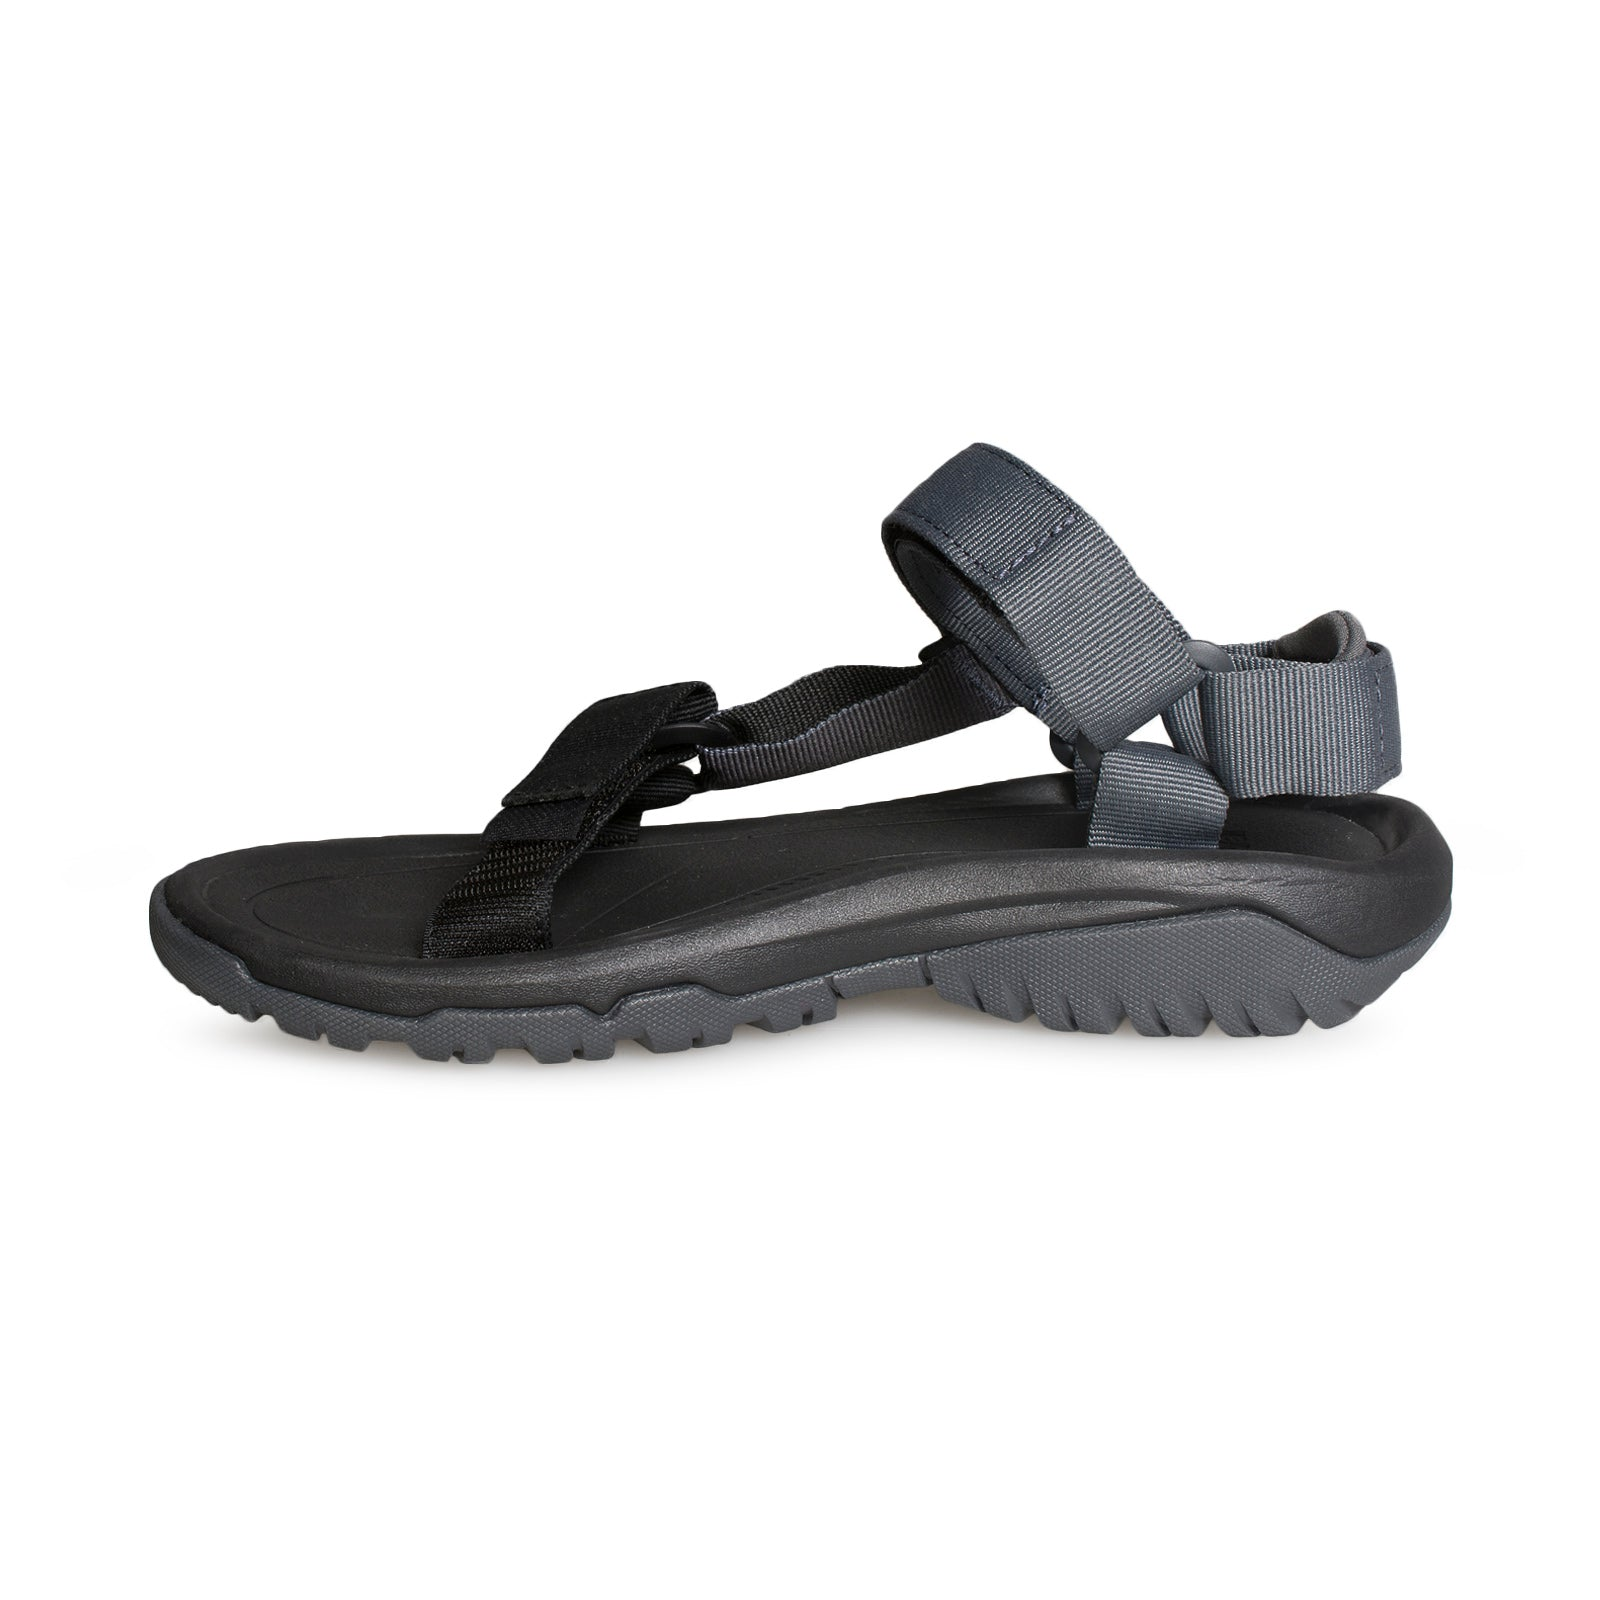 65a4c616fddb Teva Hurricane XLT 2 Gradient Black   Grey Sandals - Women s